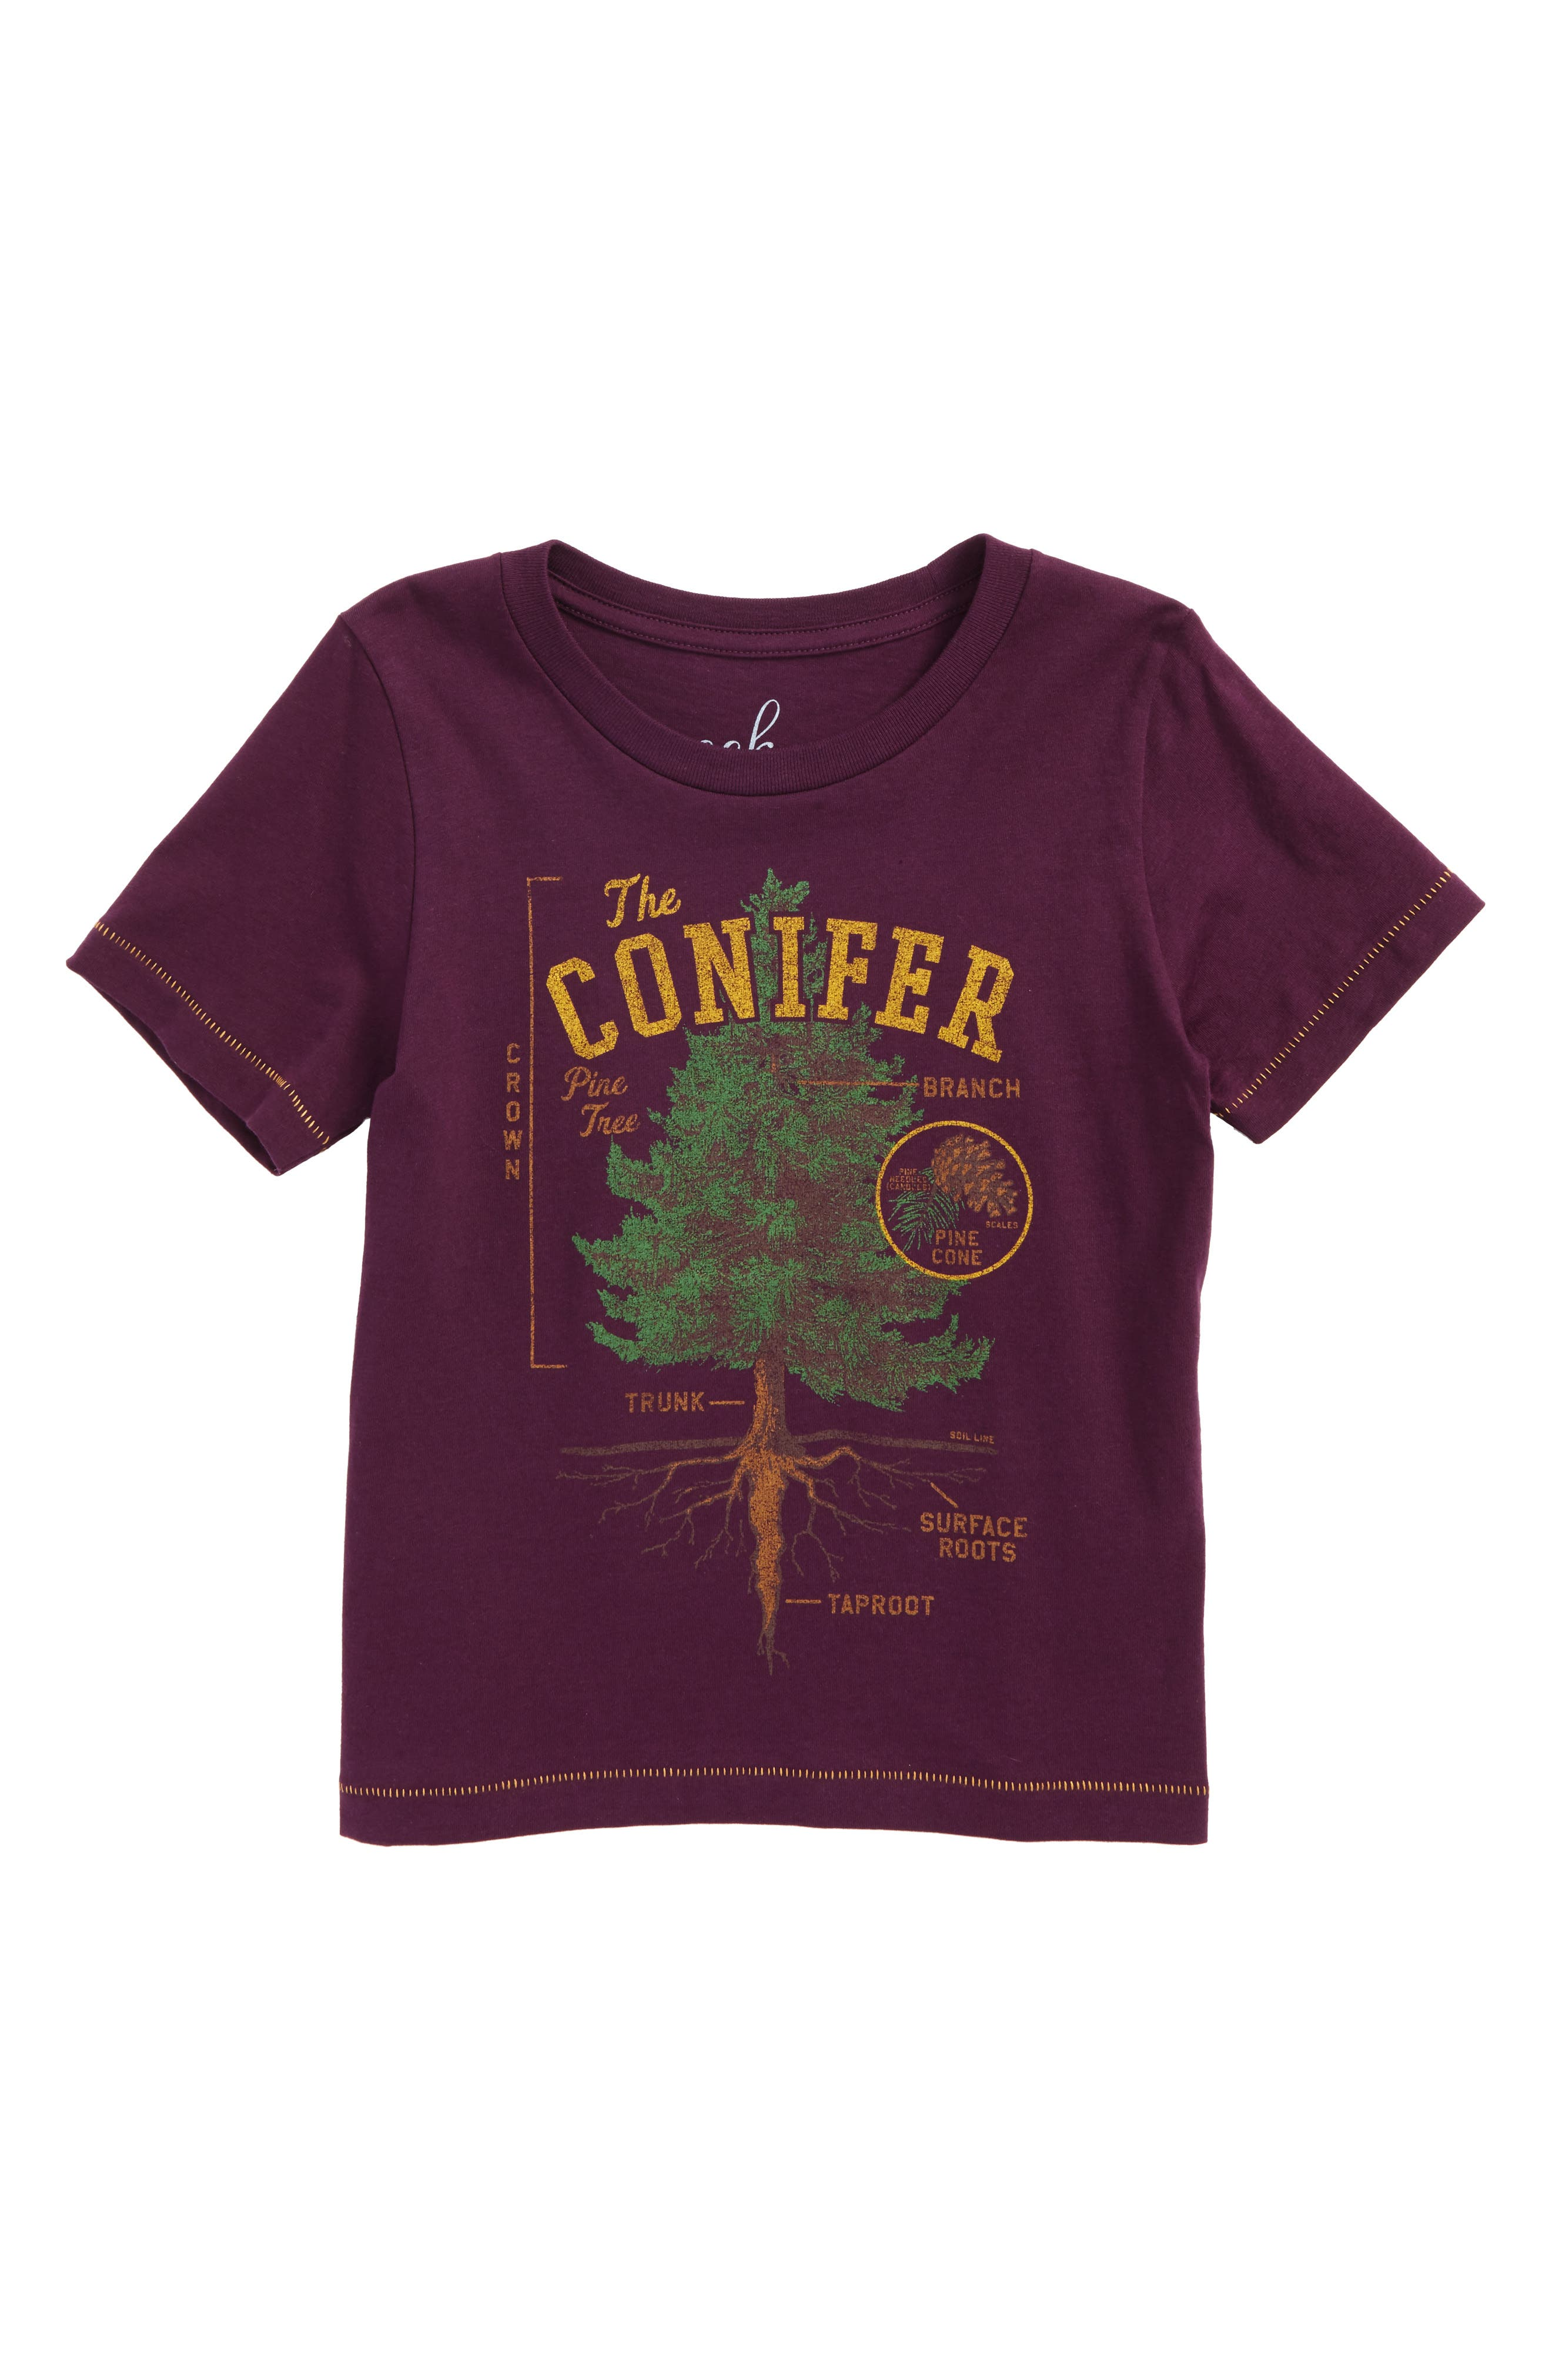 Alternate Image 1 Selected - Peek The Conifer Graphic T-Shirt (Toddler Boys, Little Boys & Big Boys)